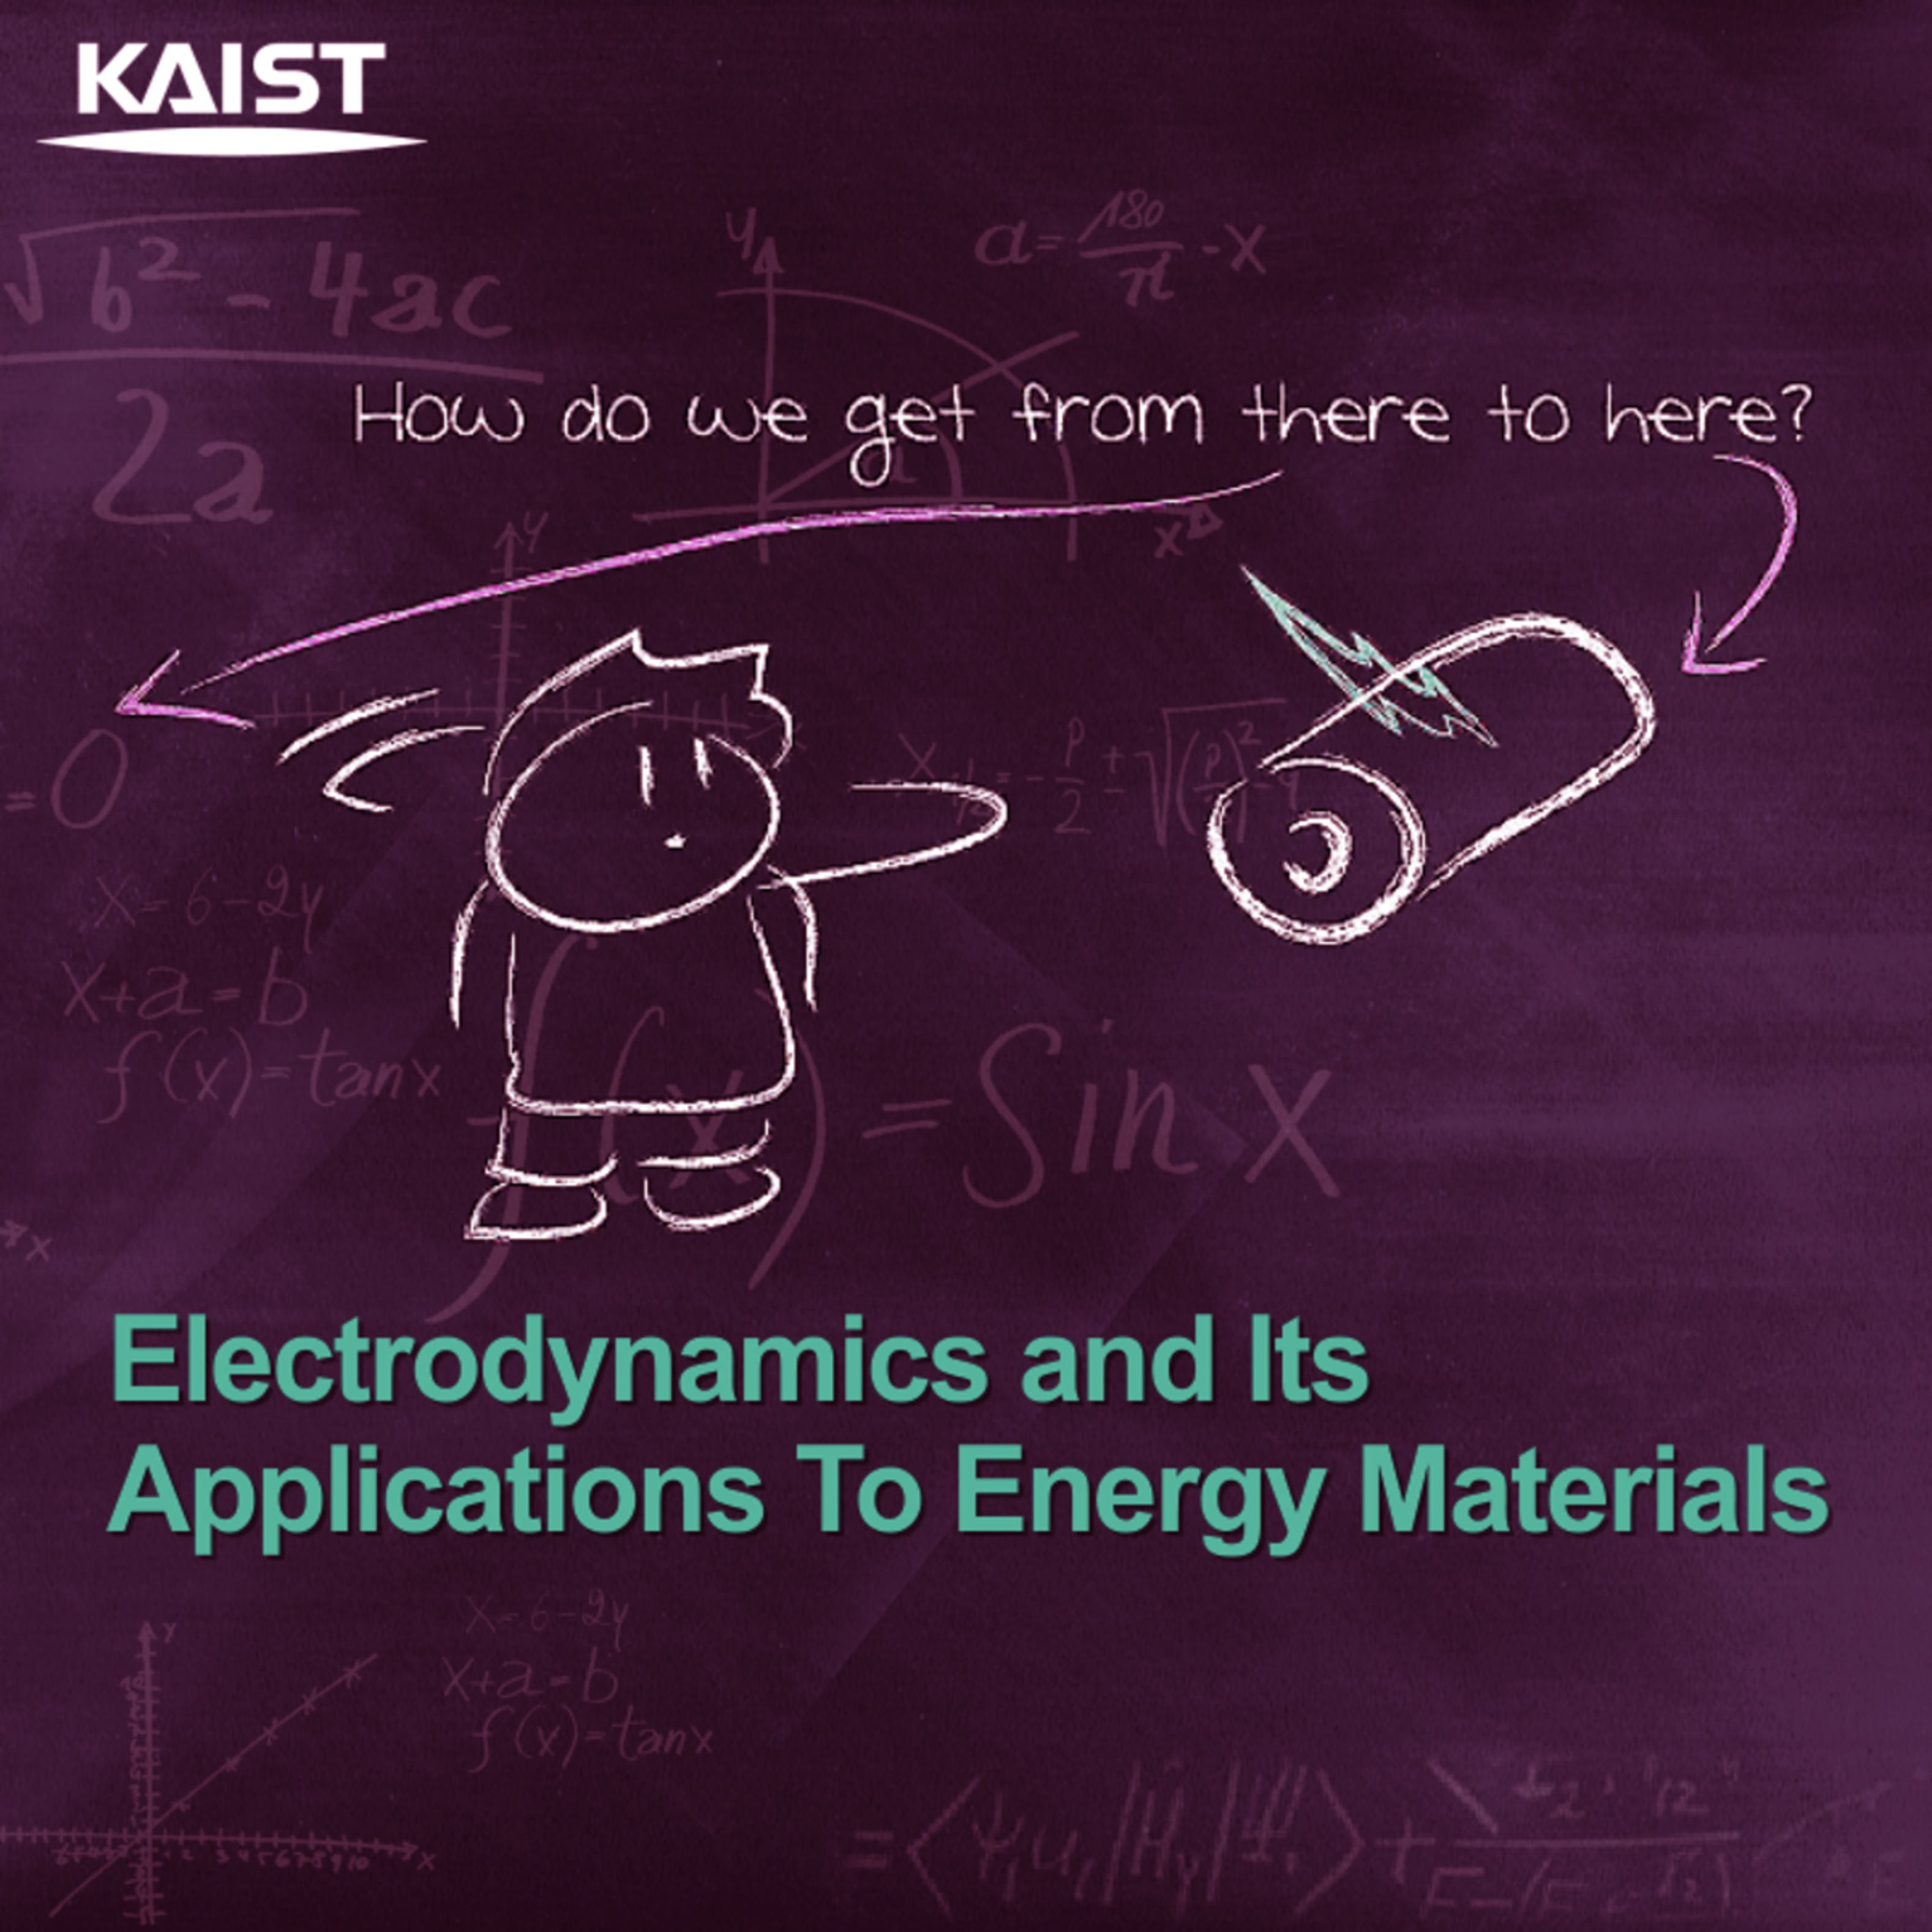 Electrodynamics: Electric and Magnetic Fields | Coursera